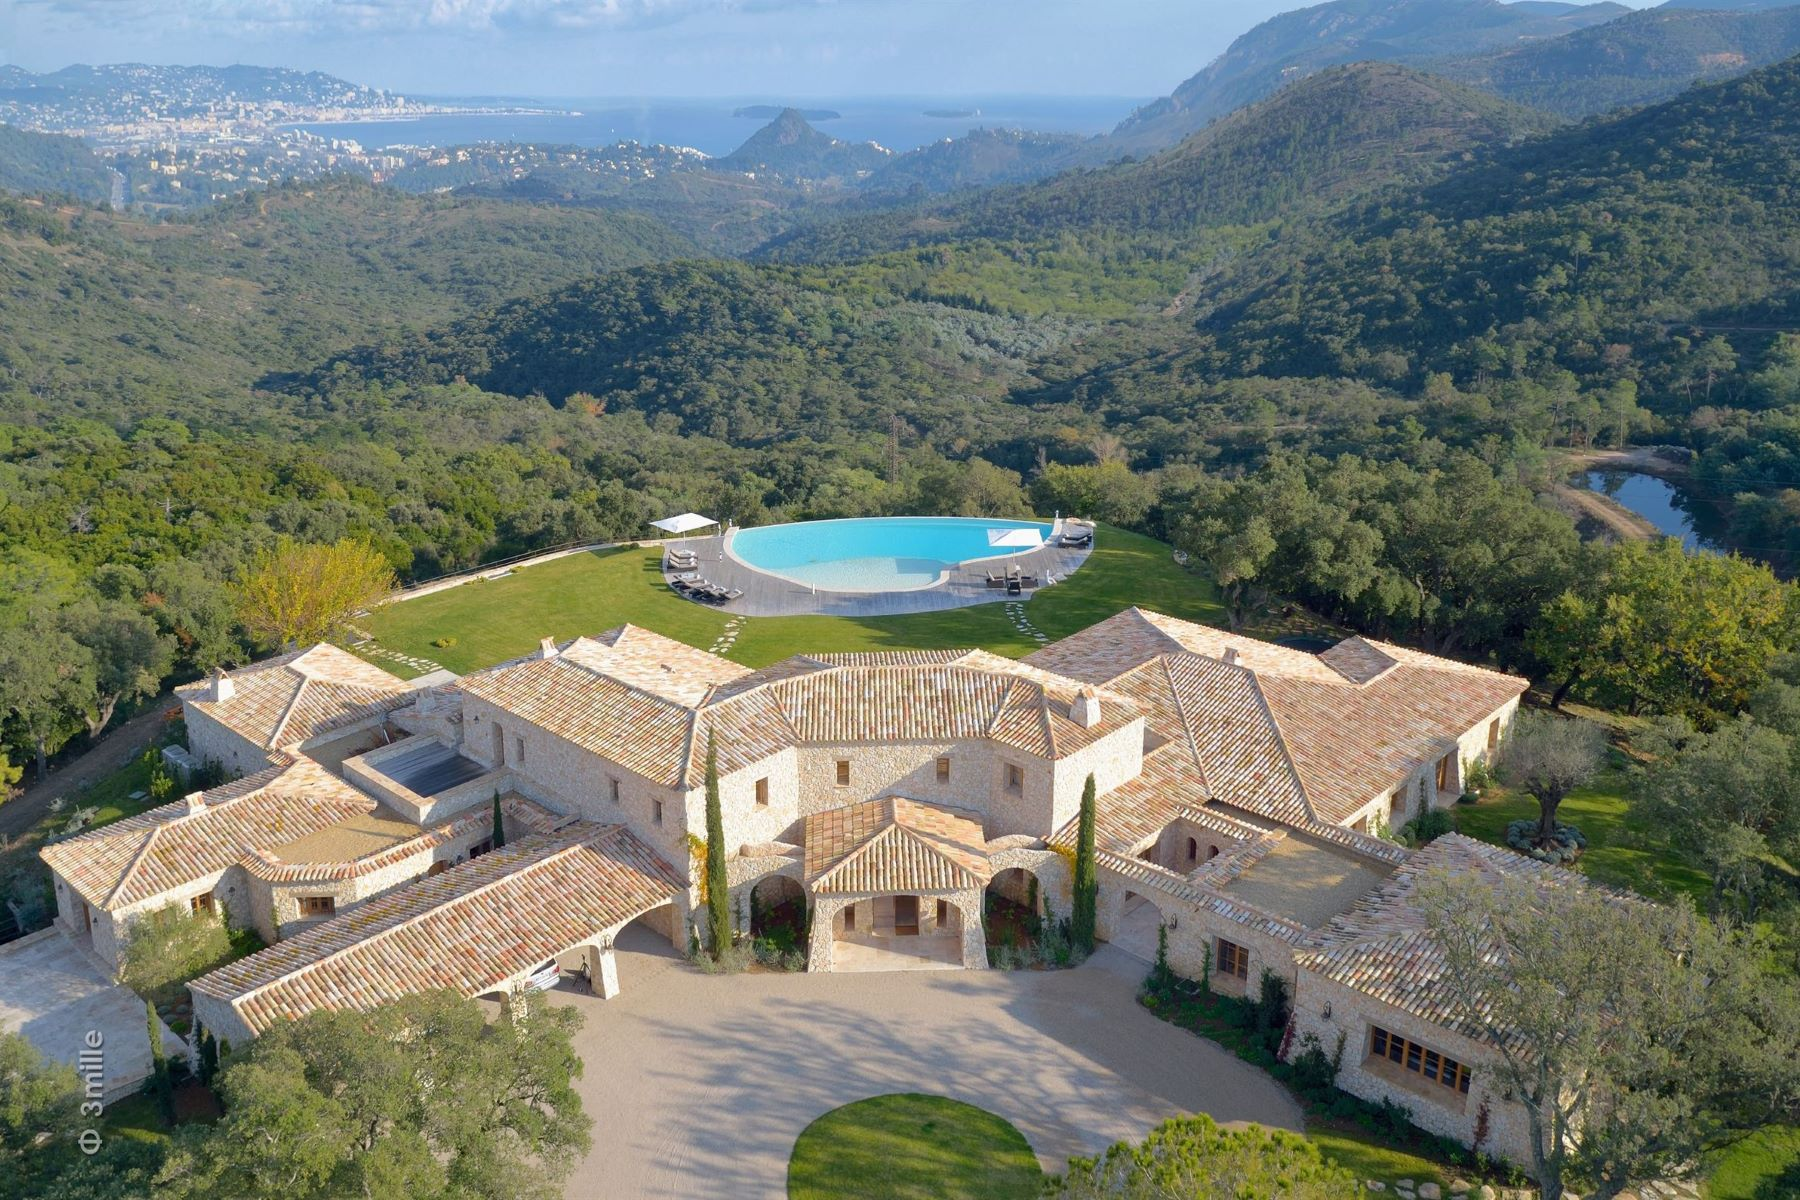 Single Family Homes for Sale at Magnificent provencal domain with views over the bay of Cannes - luxury estate Les Adrets De L Esterel, Provence-Alpes-Cote D'Azur 83600 France